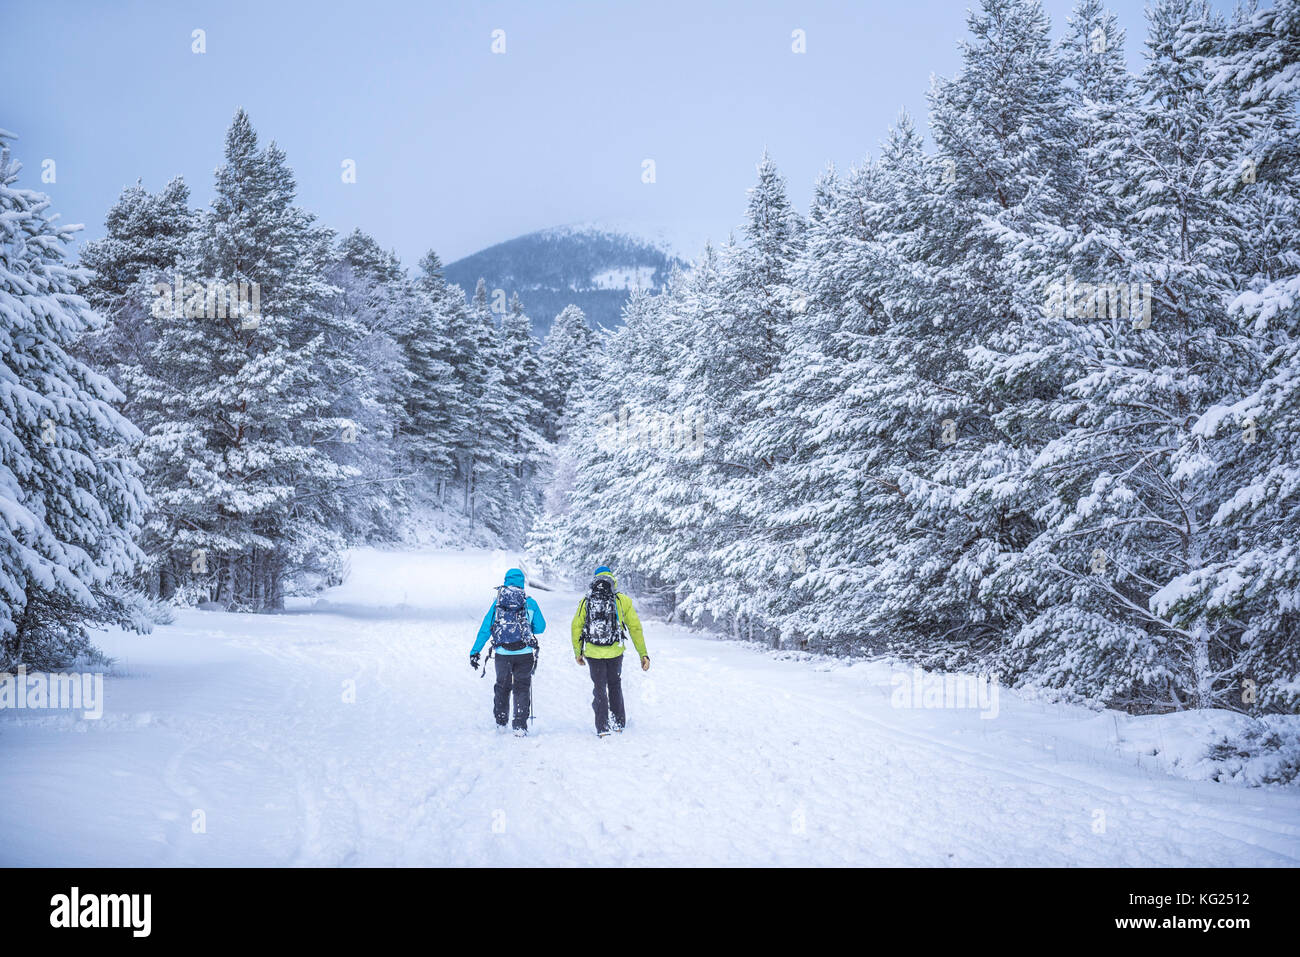 Hiking at CairnGorm Mountain, Glenmore, Cairngorms National Park, Scotland, United Kingdom, Europe Stock Photo